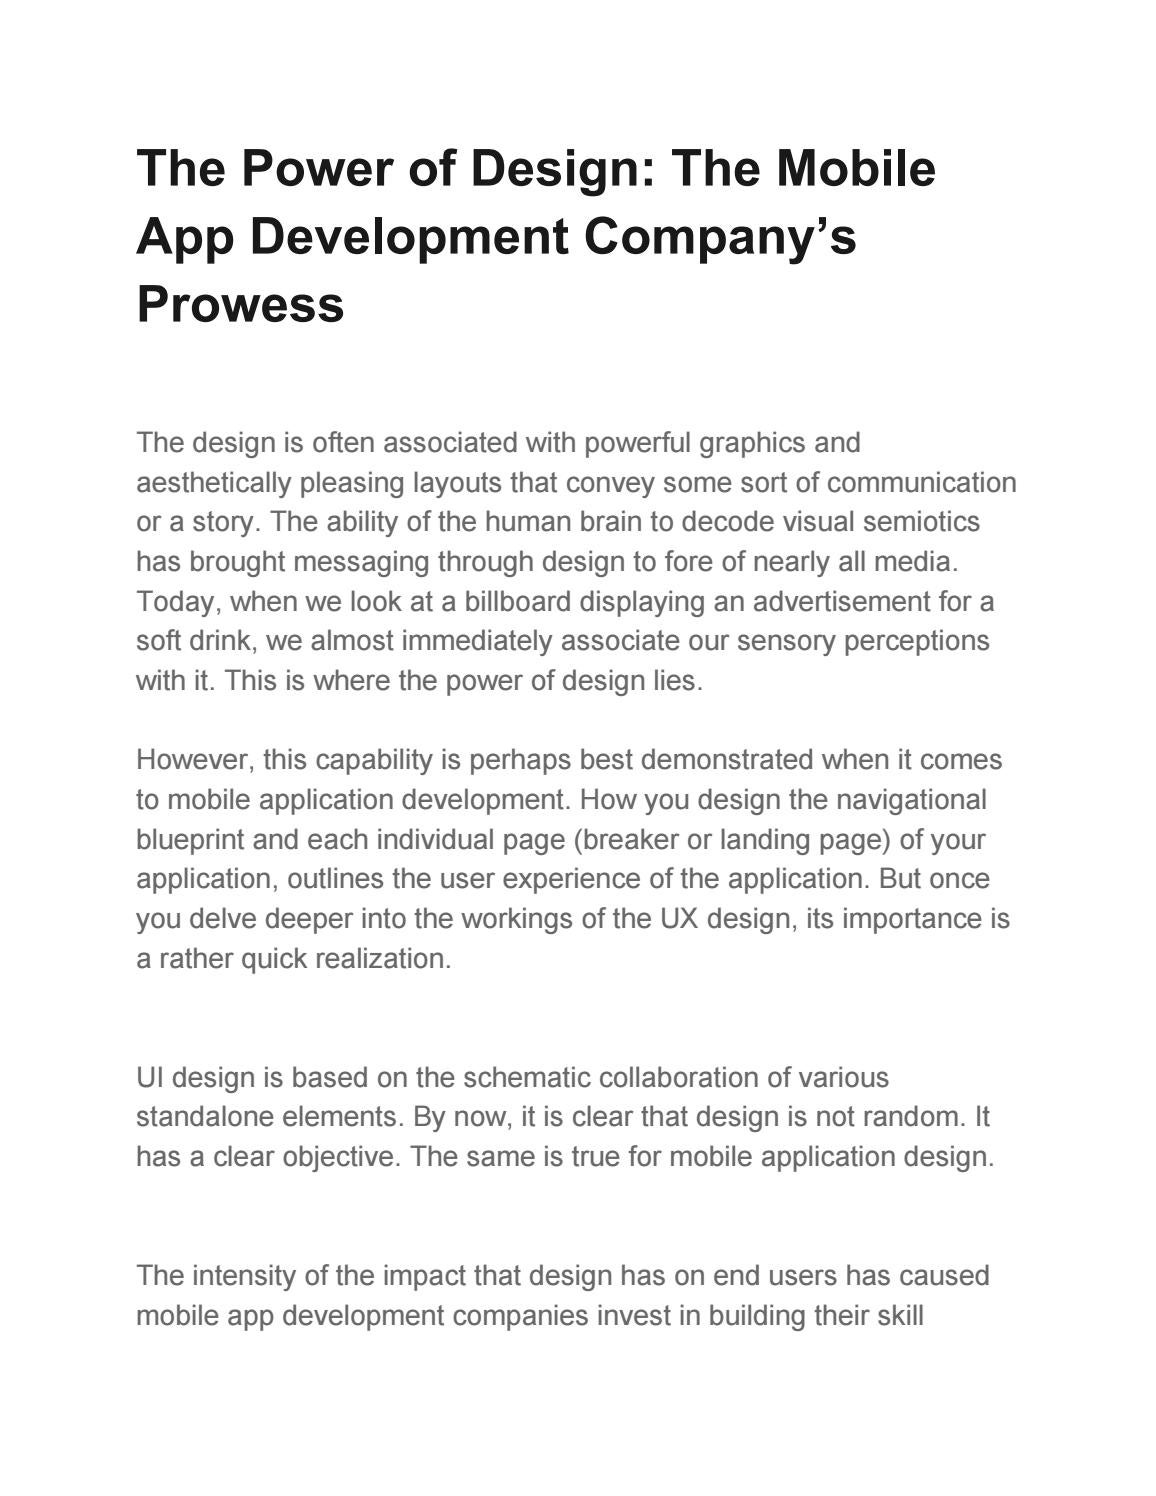 The Power of Design: The Mobile App Development Company's Prowess by